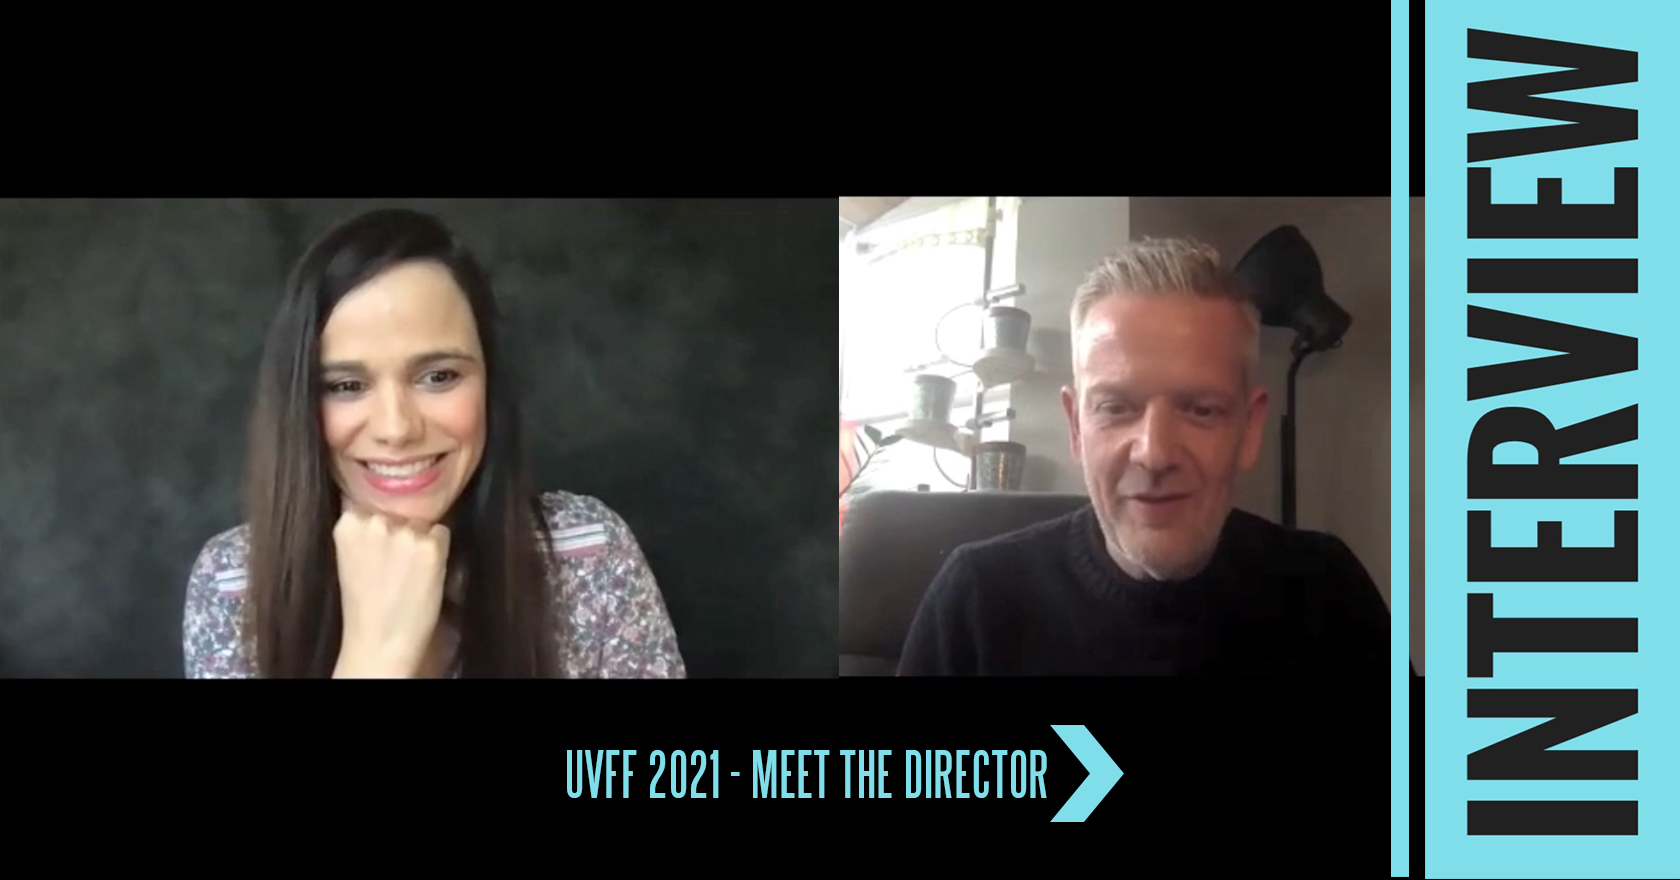 Director's Interview at the UK's Unrestricted View Film Festival